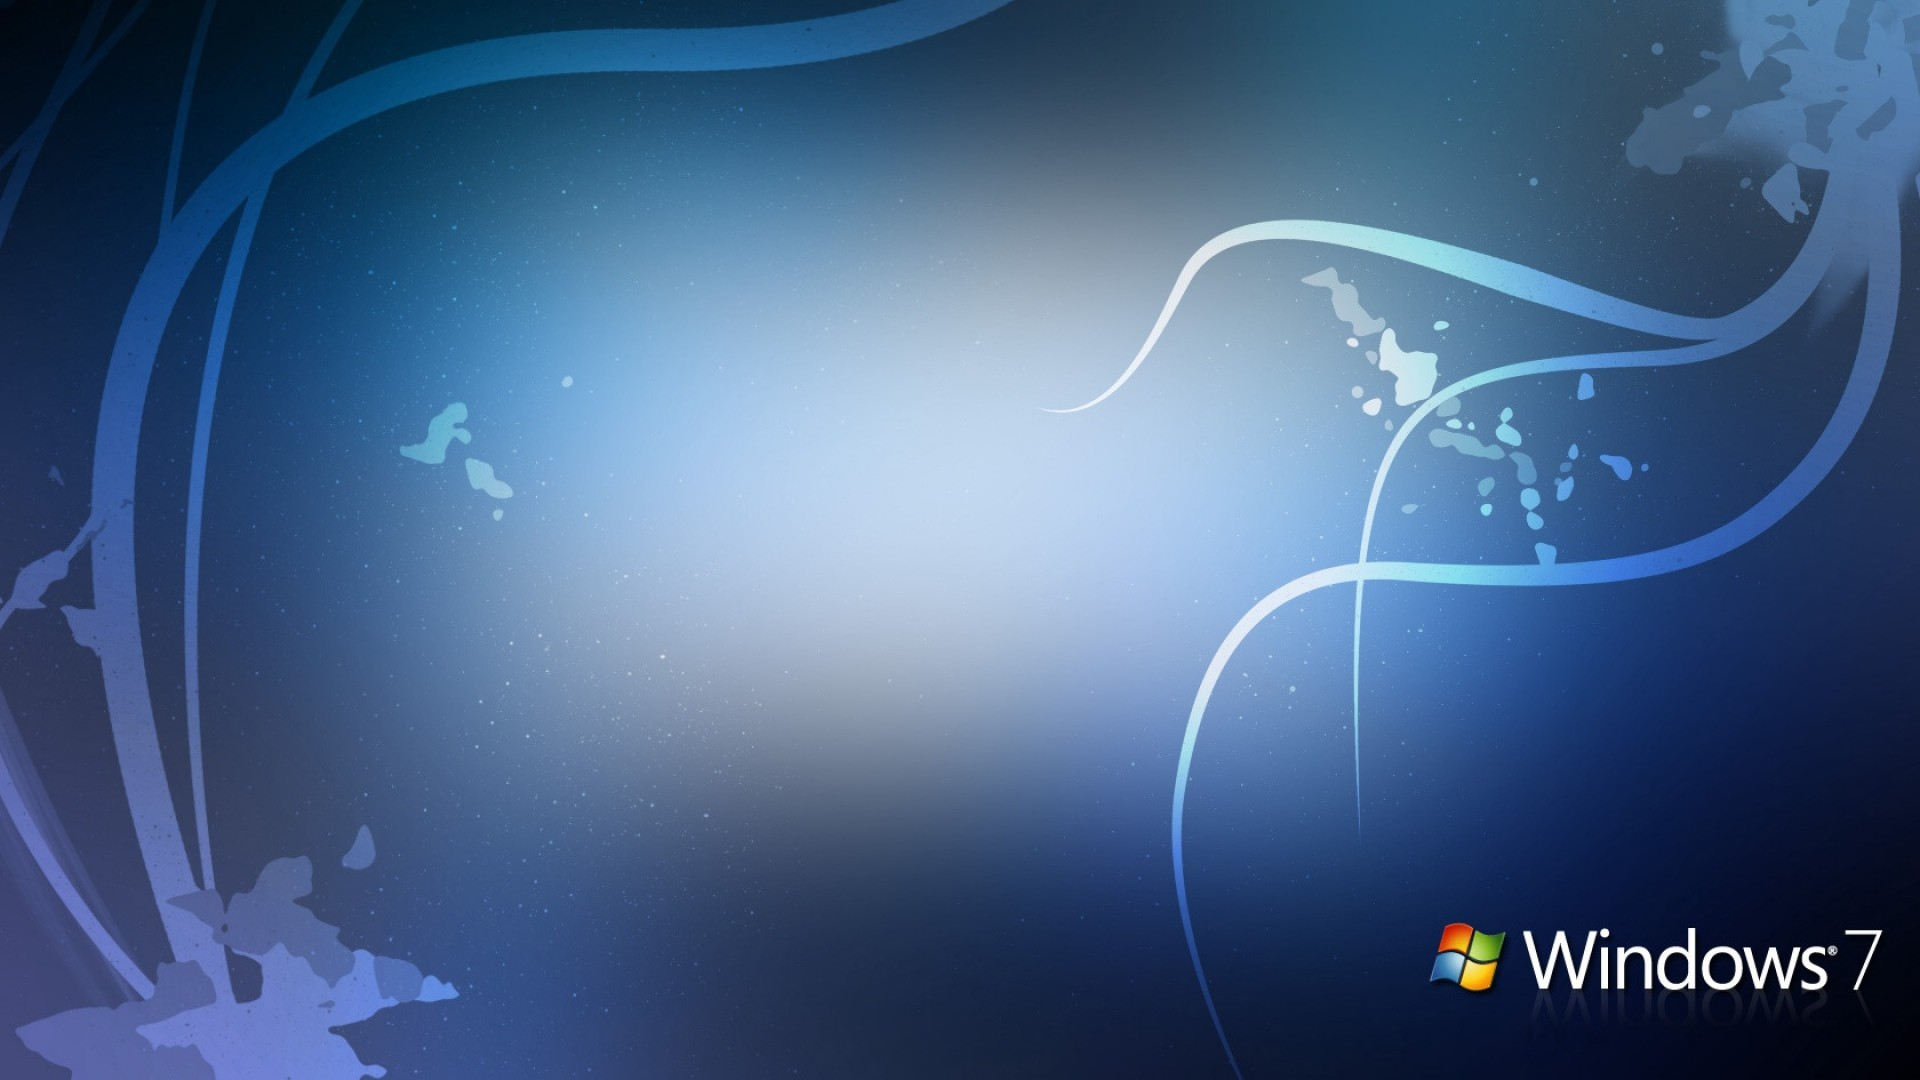 HD Windows 7 Wallpapers 1080p (72 Wallpapers)